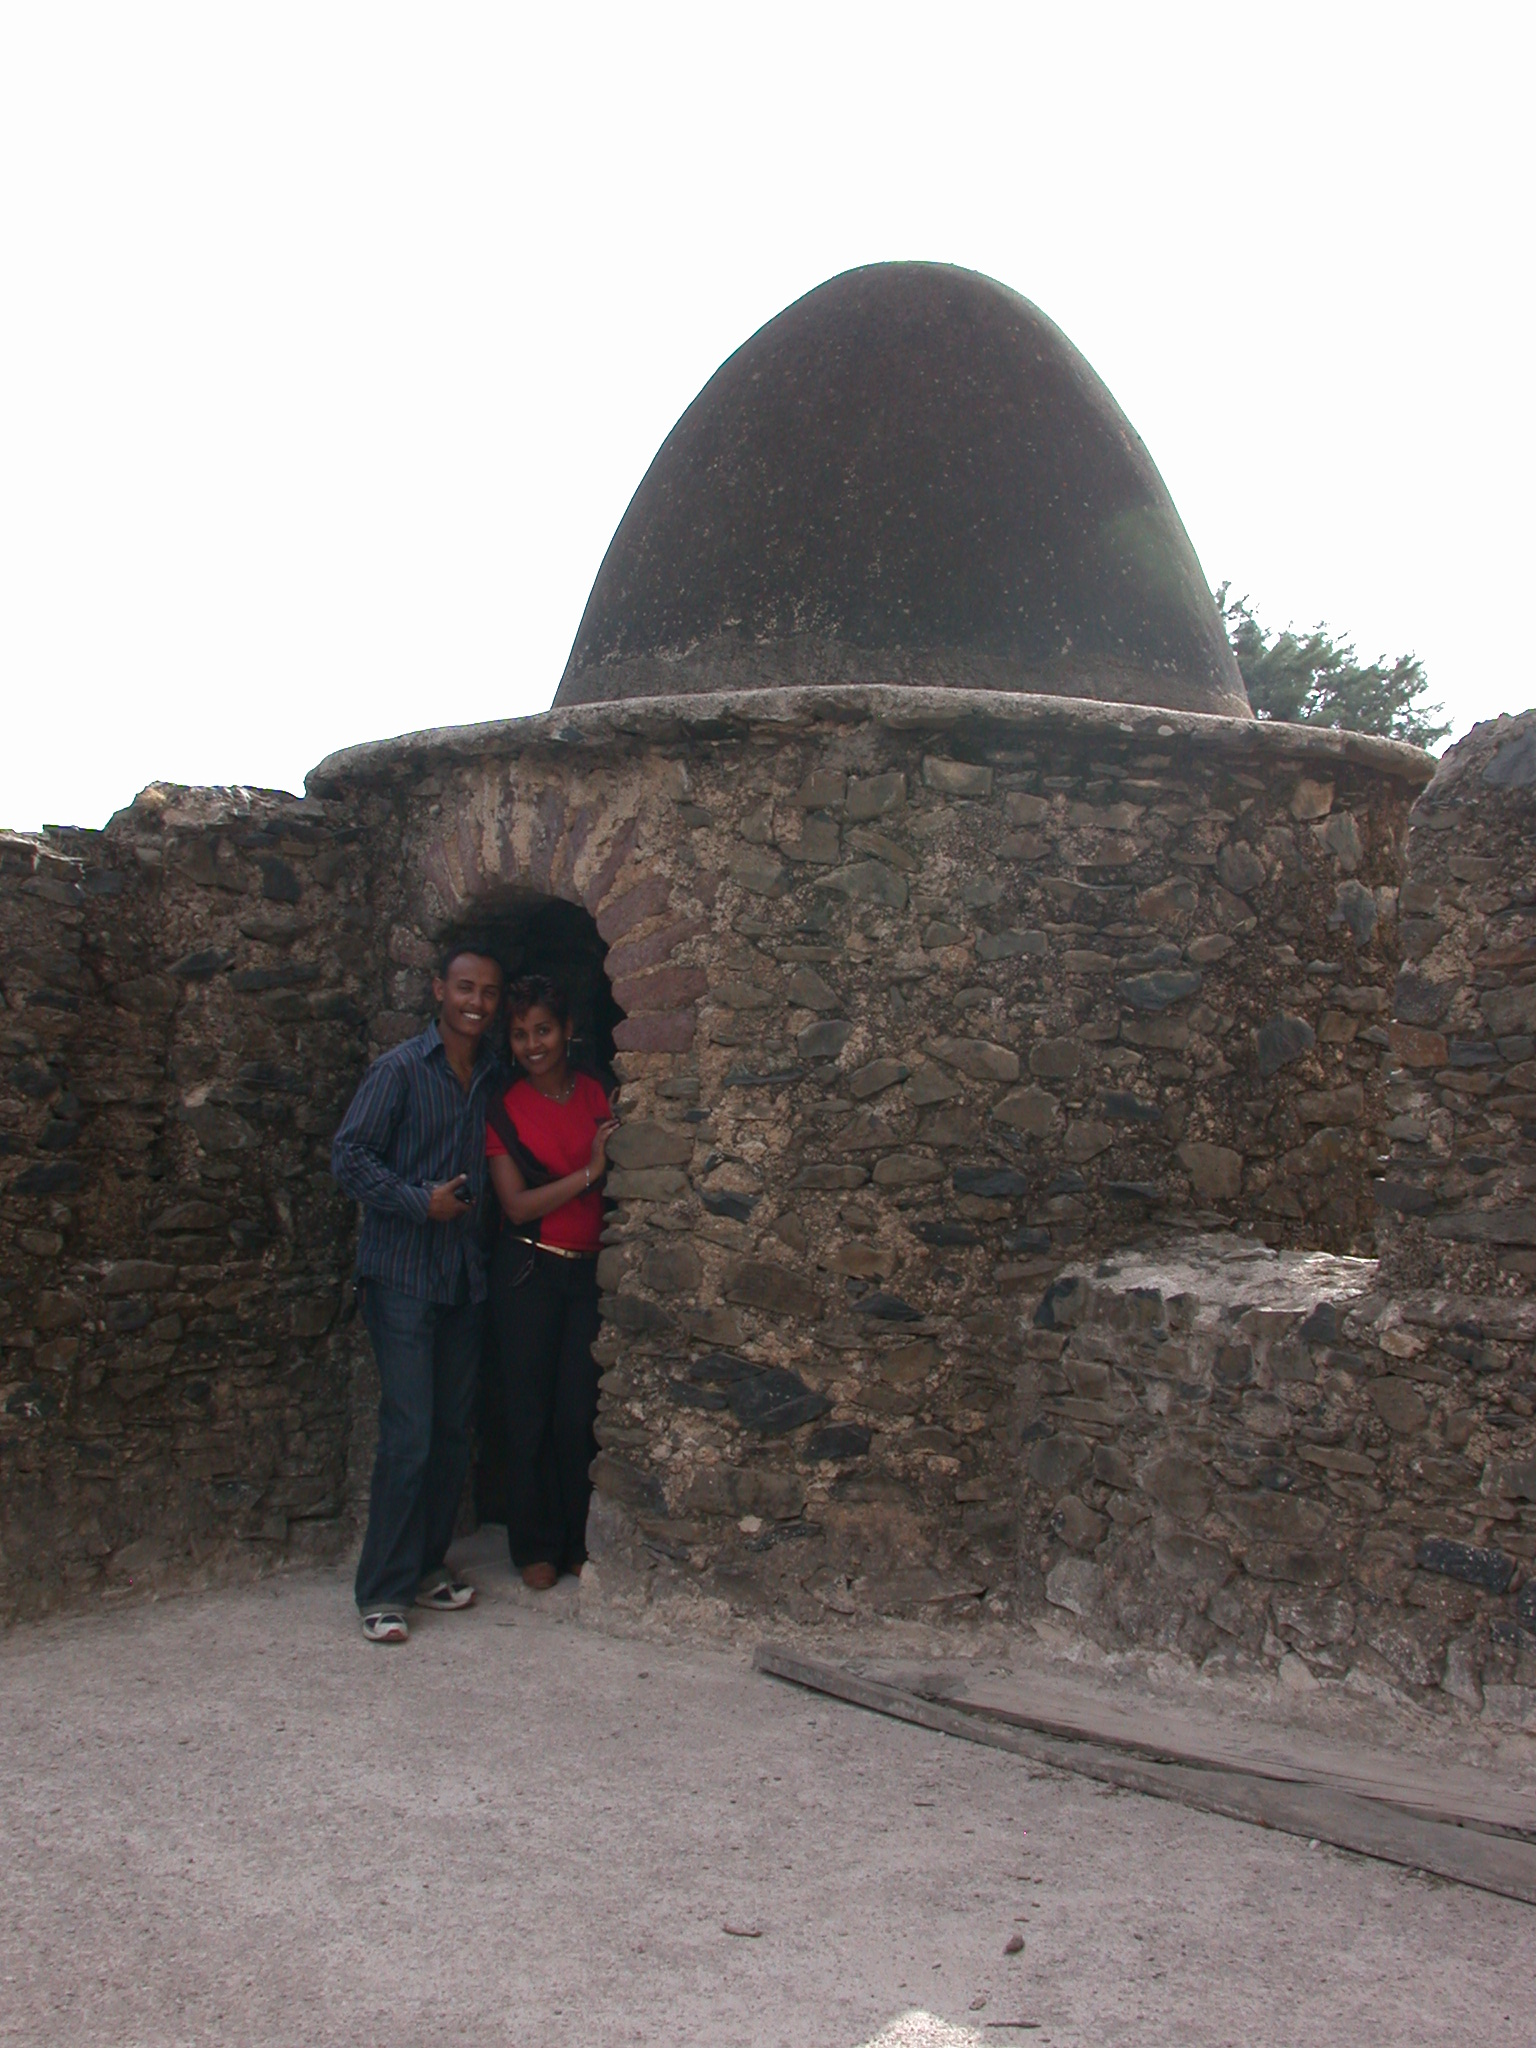 Ethiopian Couple in Front of Egg-Shaped Tower, Fasil Ghebbi Royal Enclosure, Gonder, Ethiopia